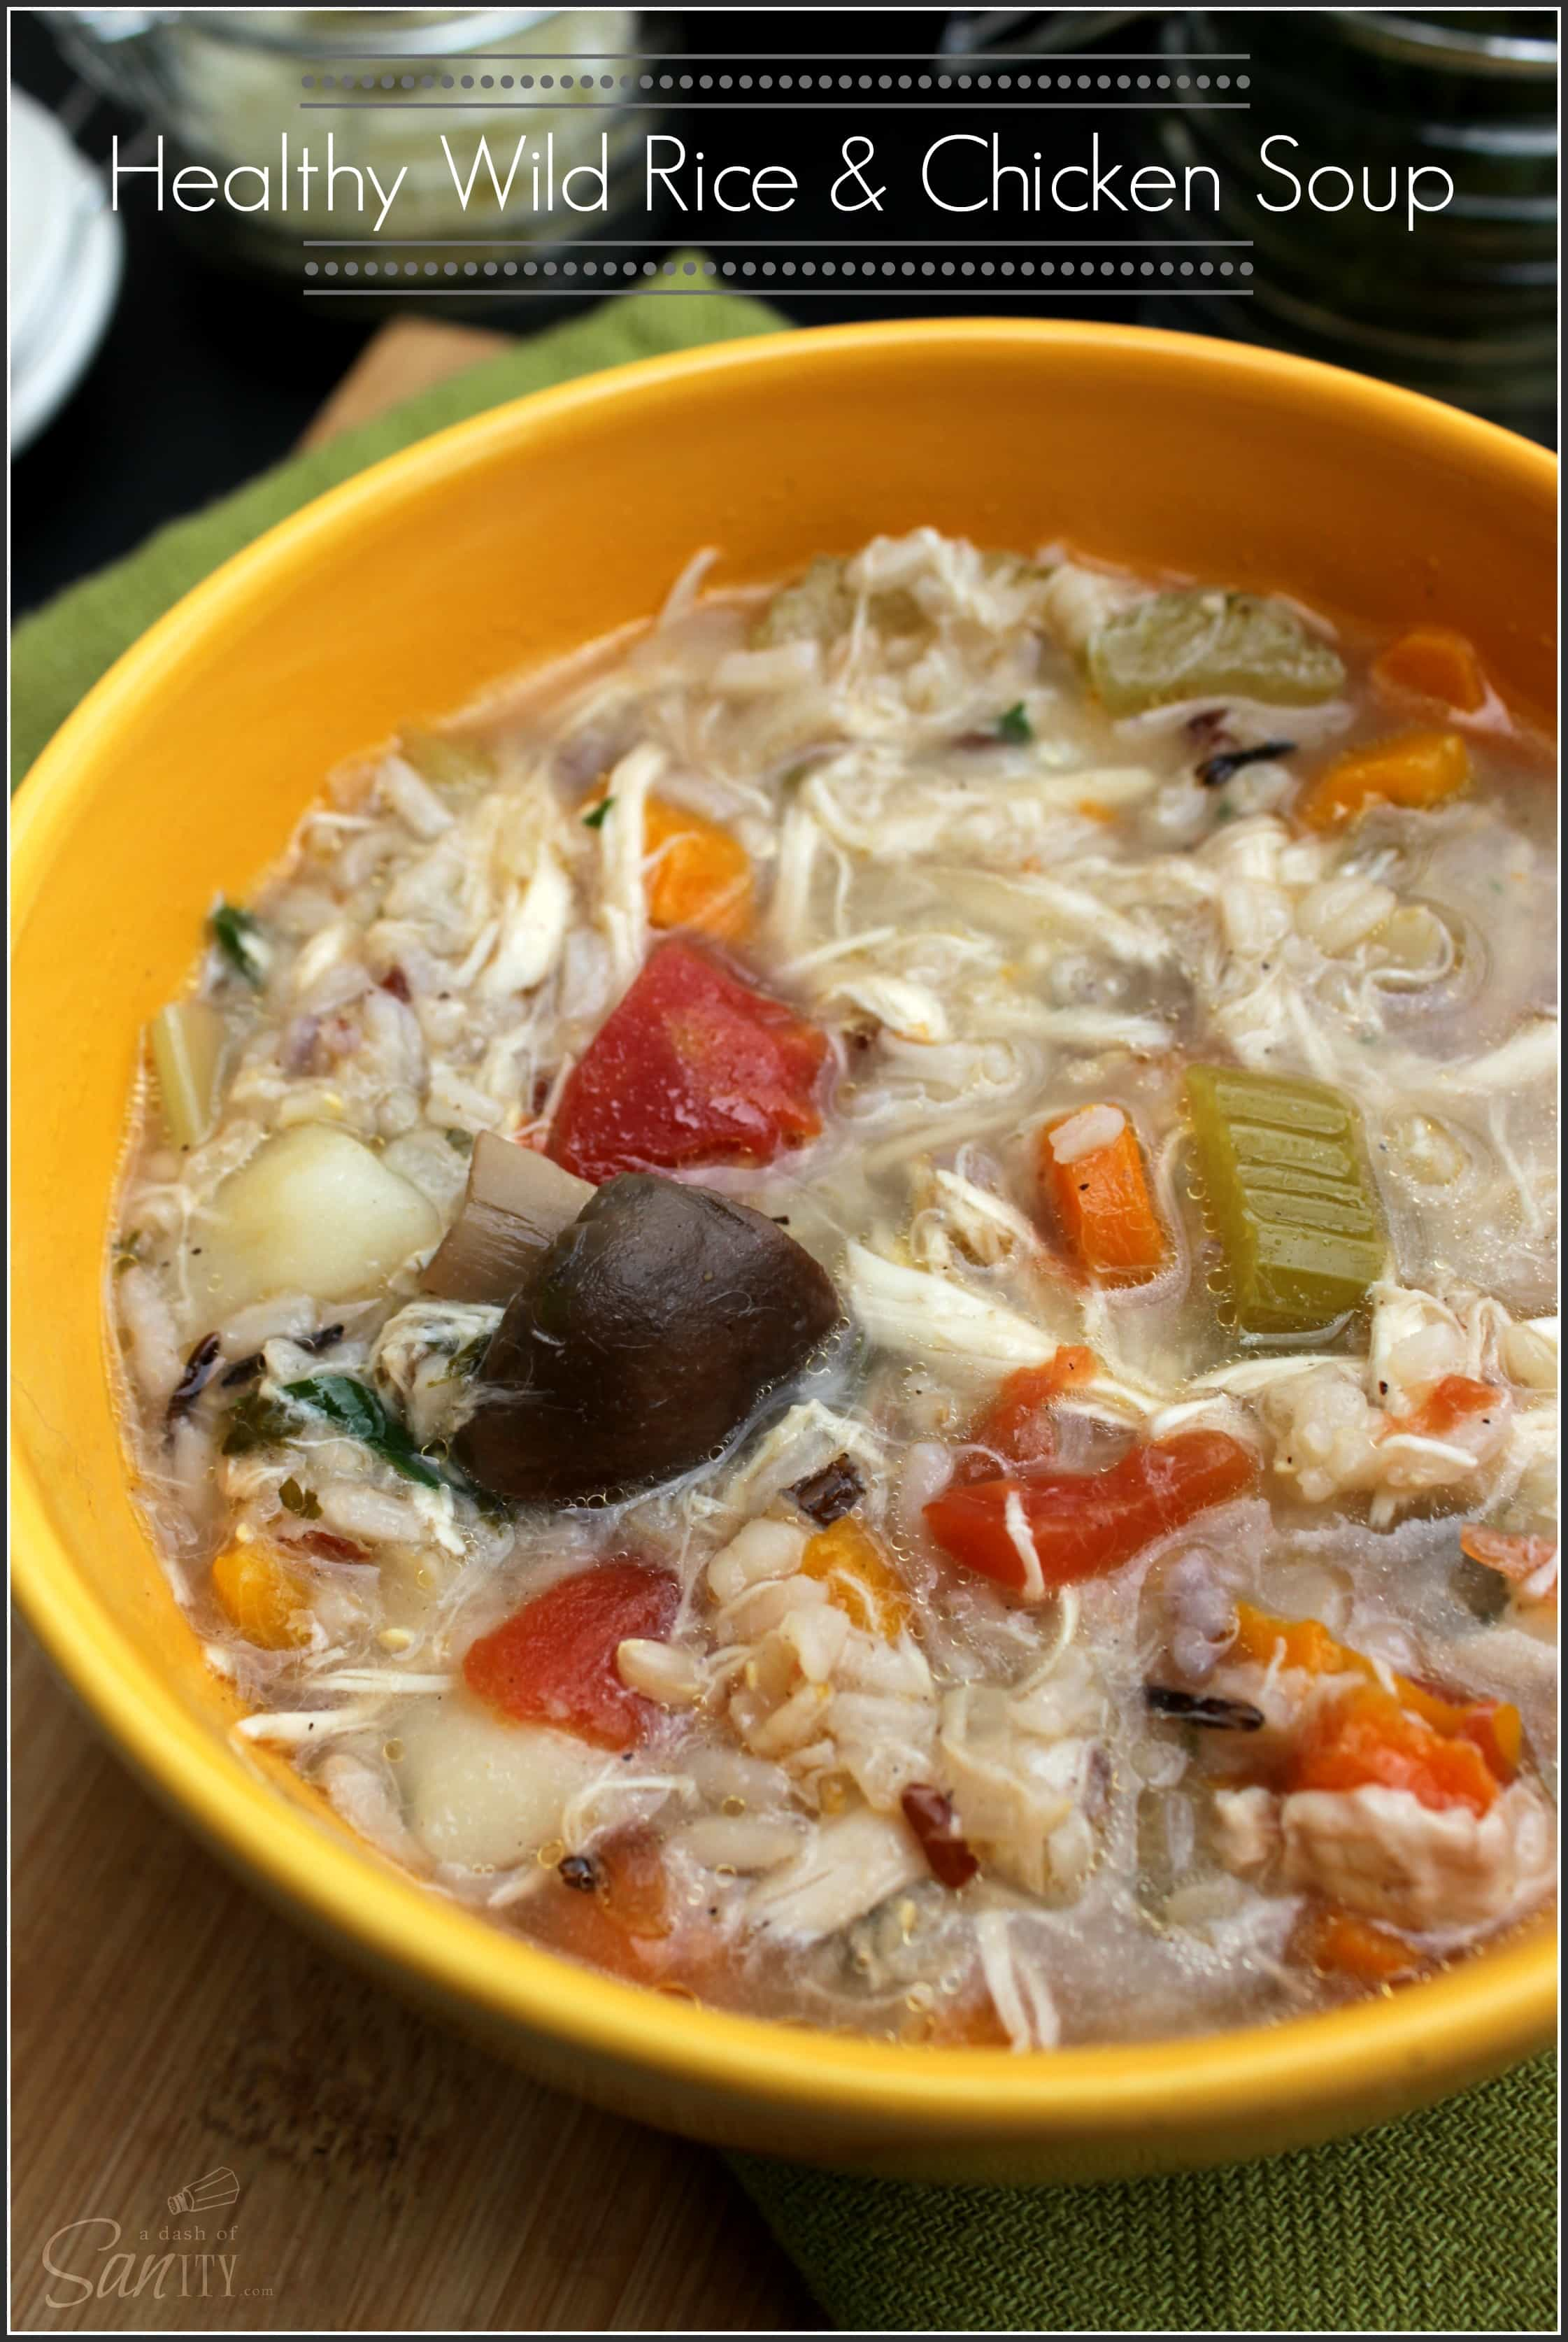 Healthy Wild Rice & Chicken Soup